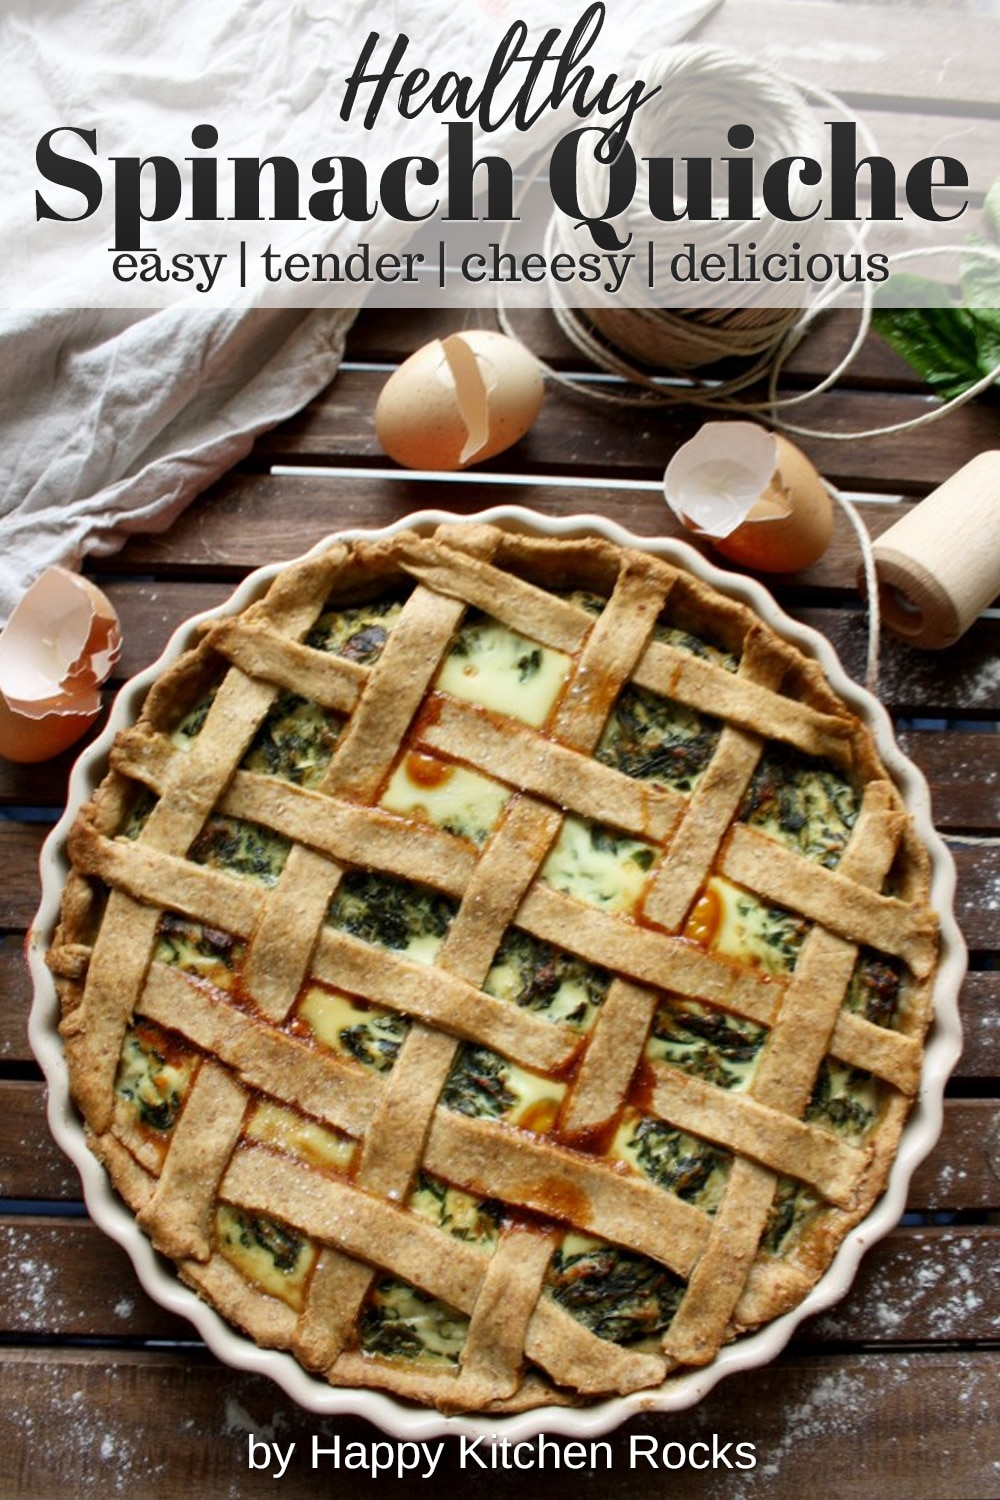 The Best Rustic Ricotta Spinach Quiche Overhead Collage with Text Overlay